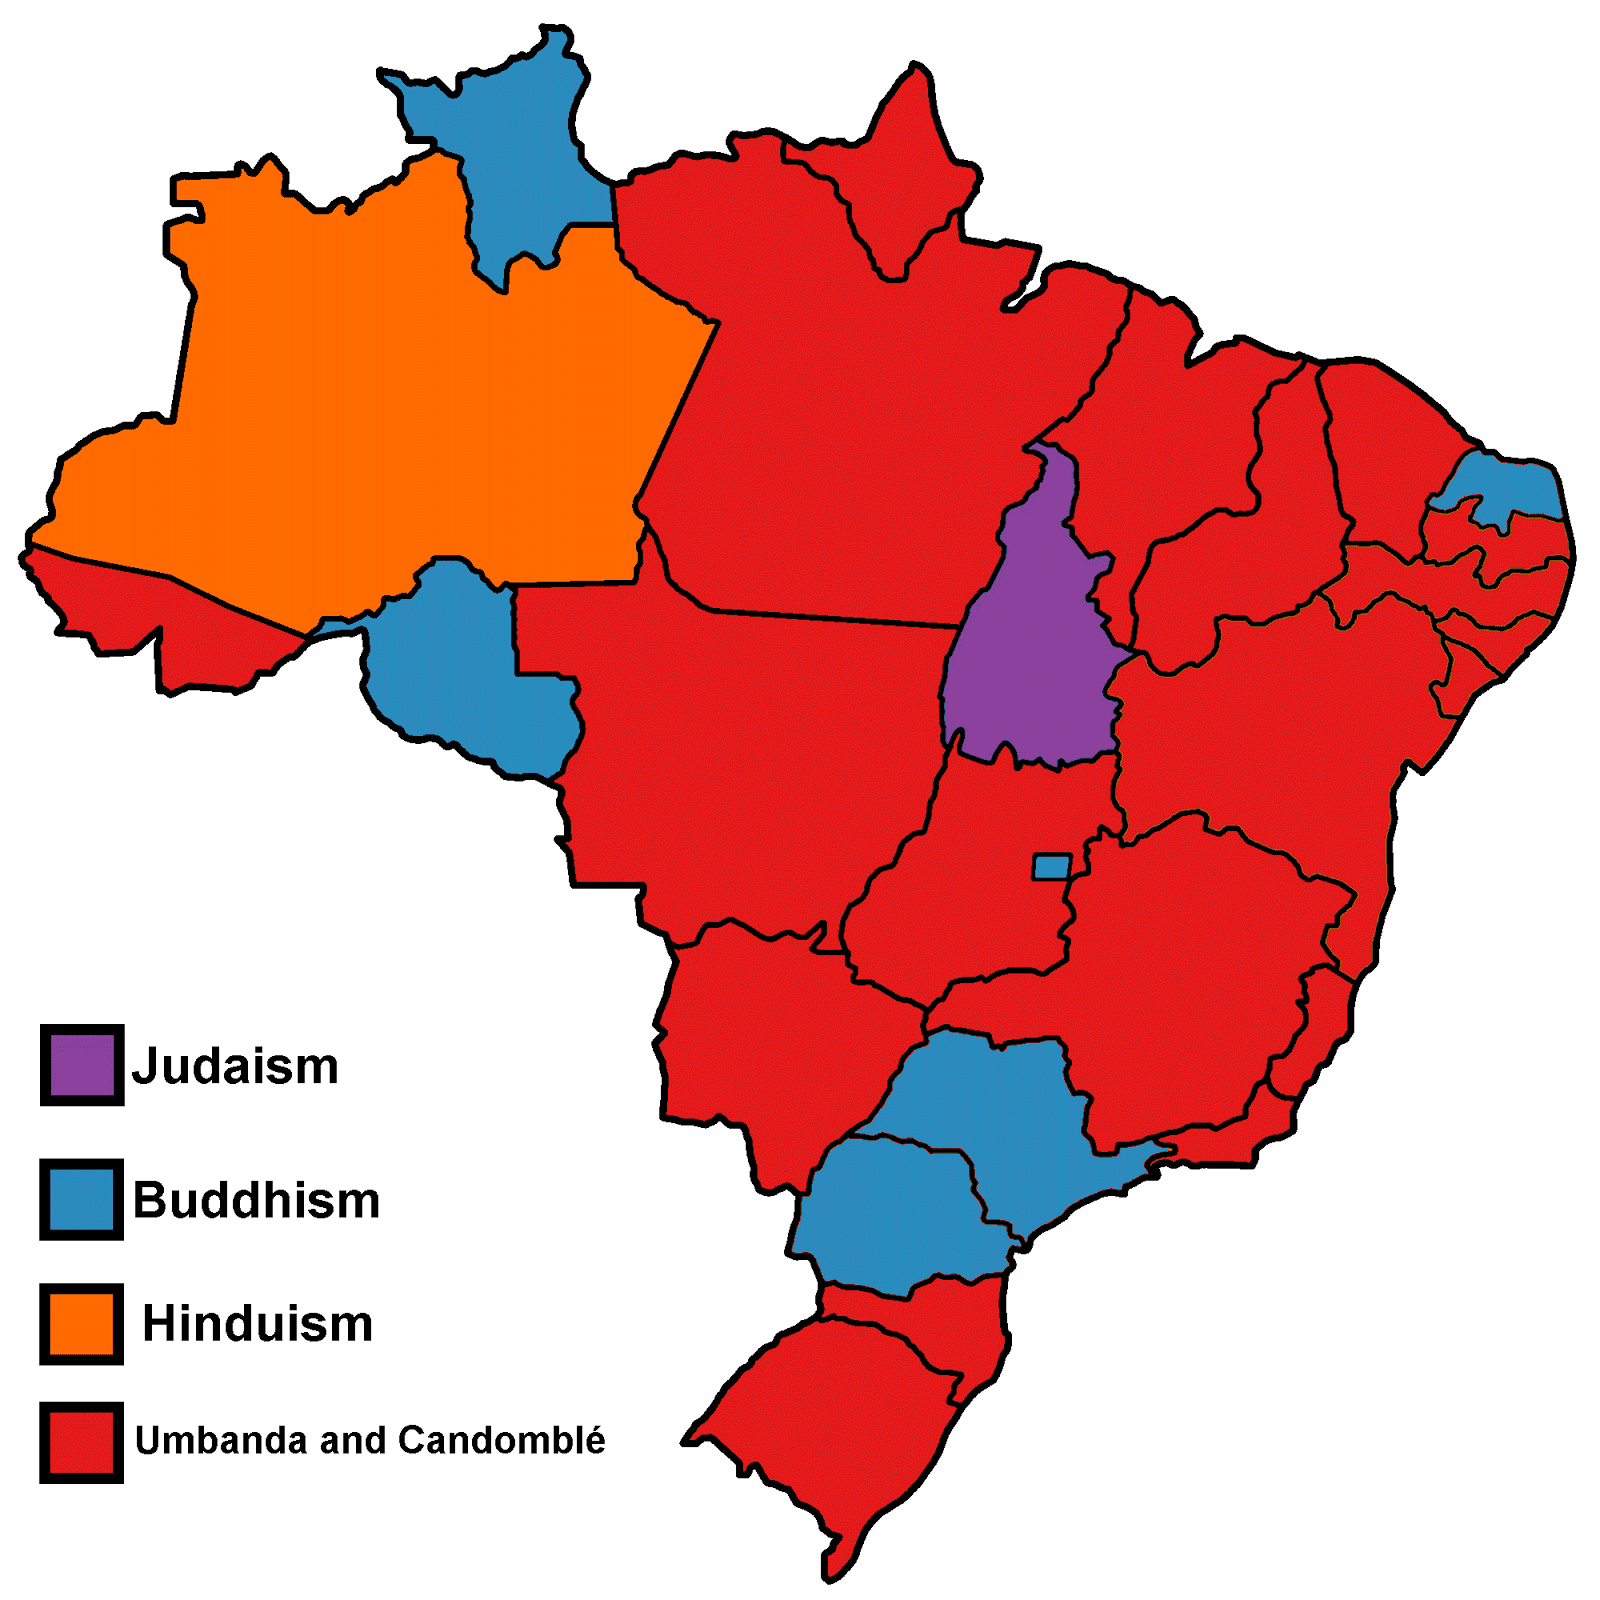 Largest non-Christian religion in each Brazilian state